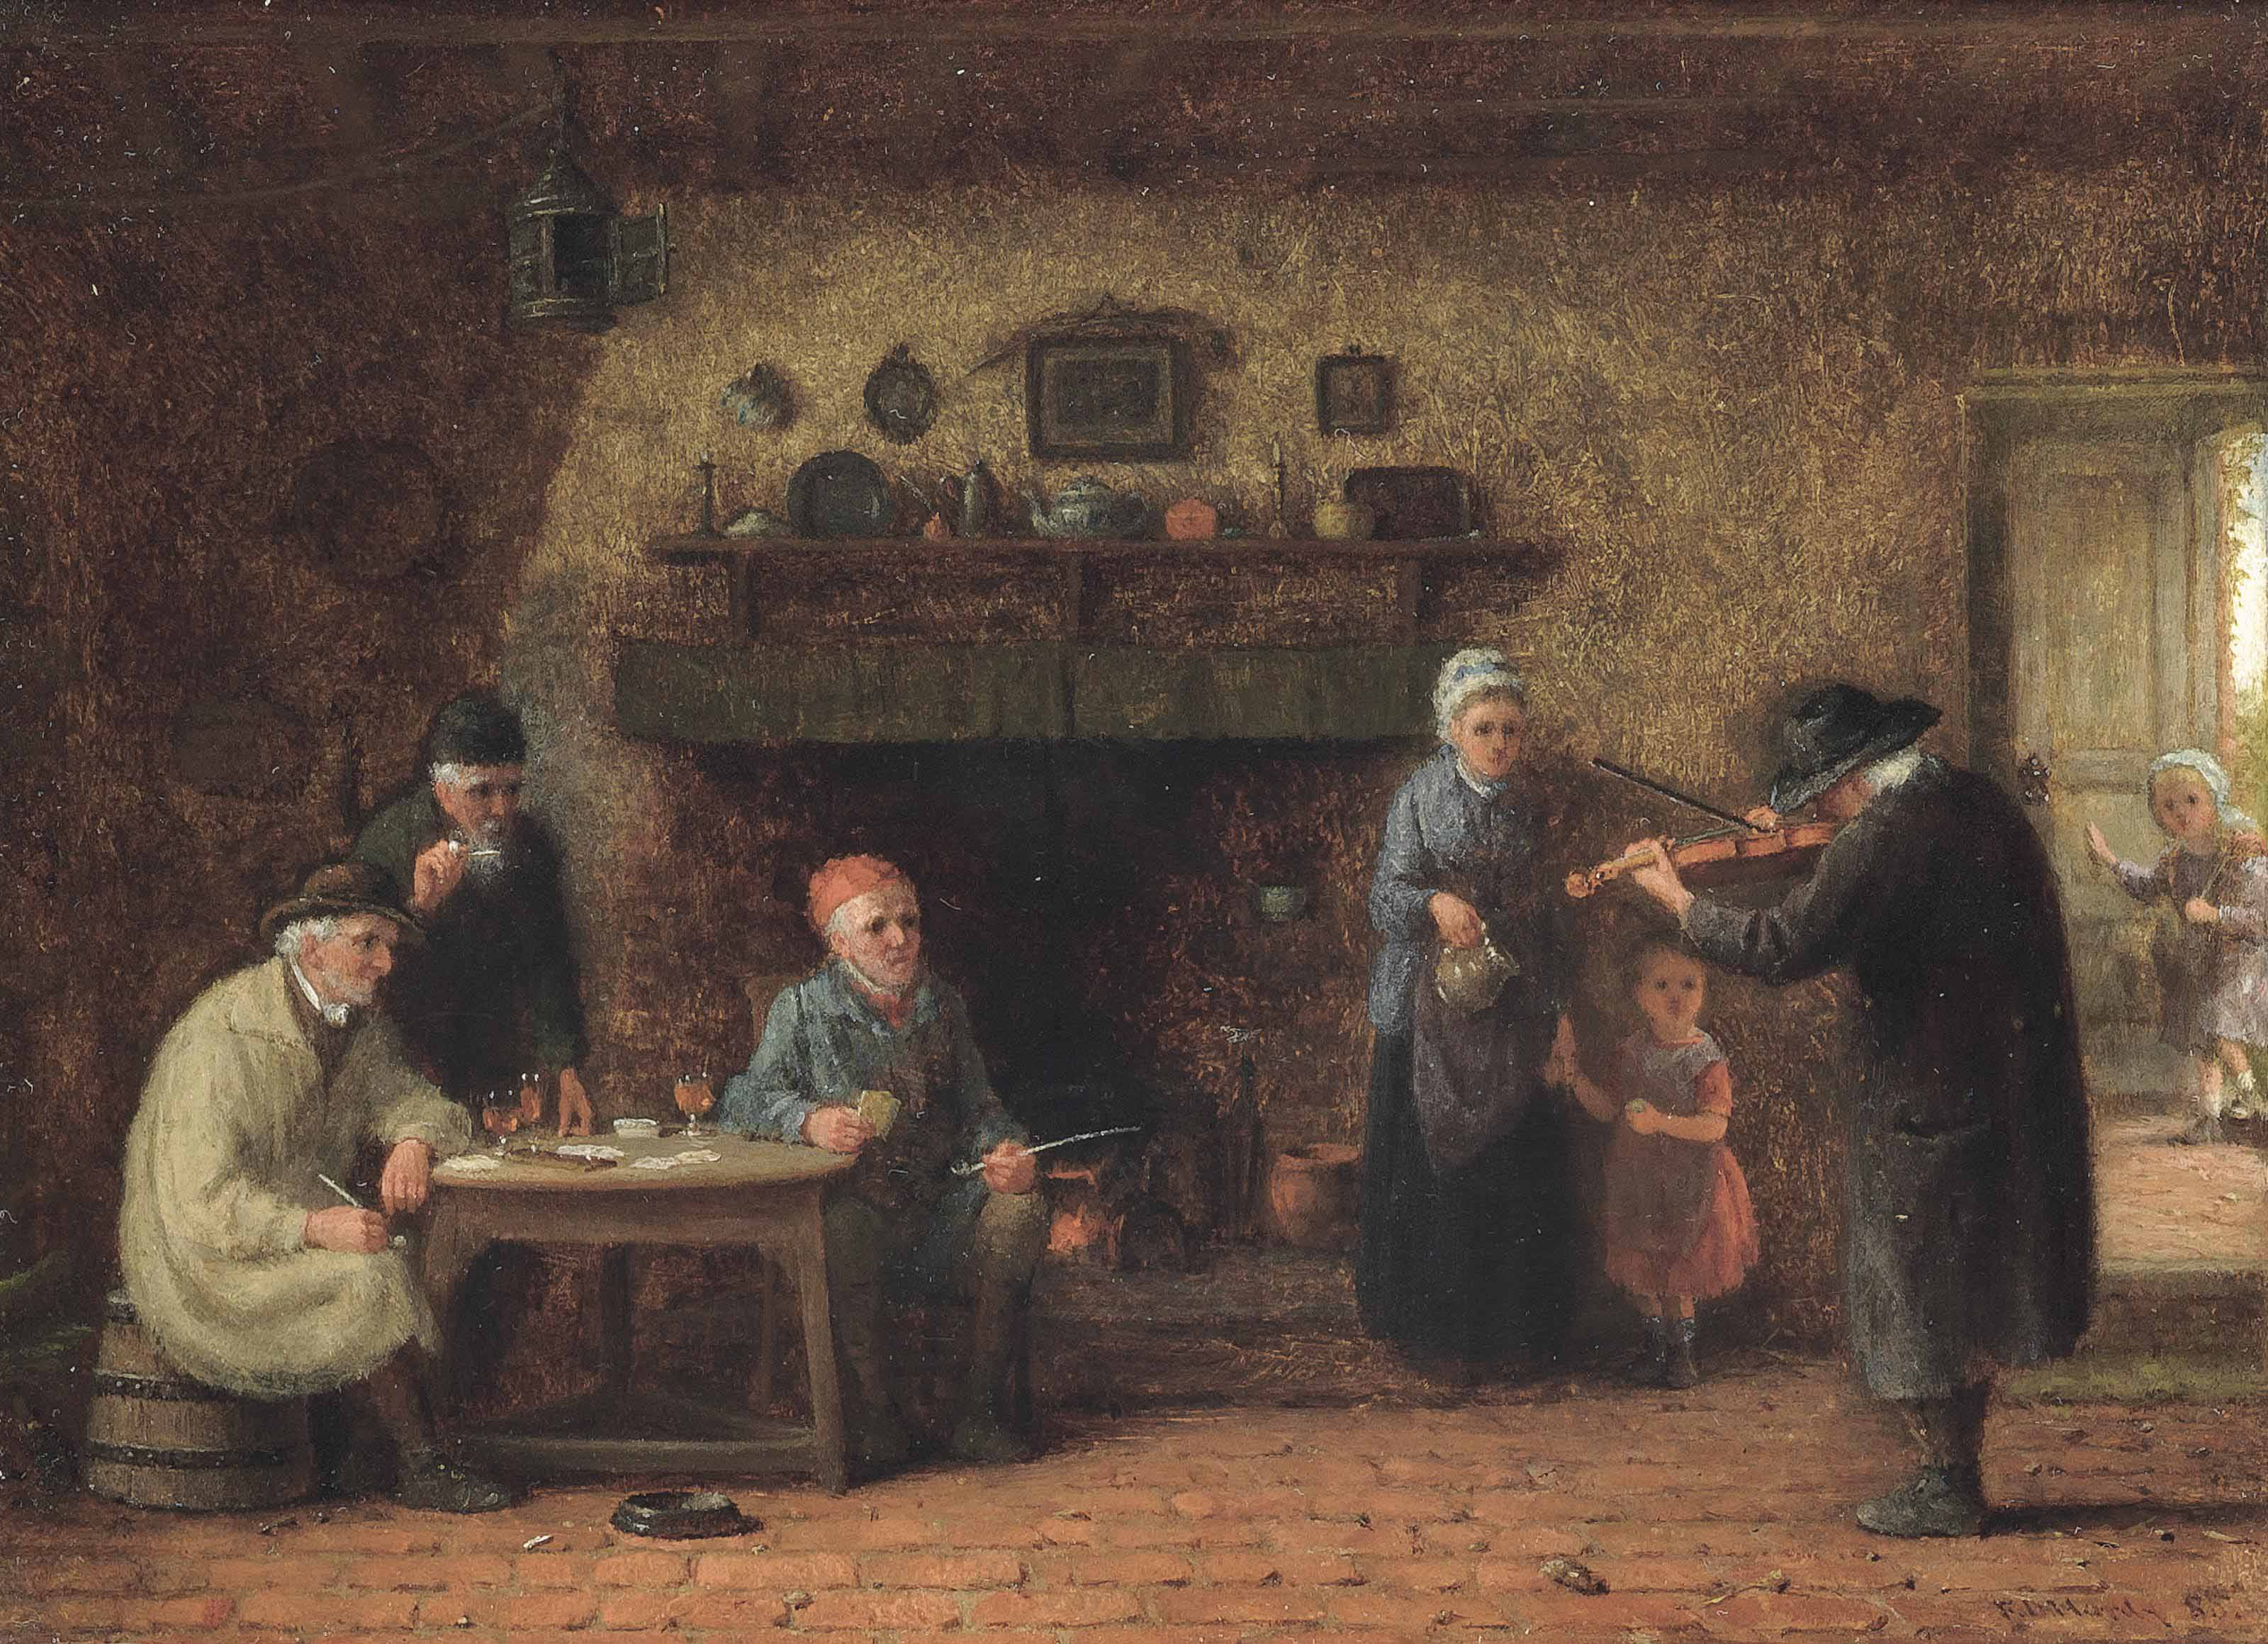 The travelling musician